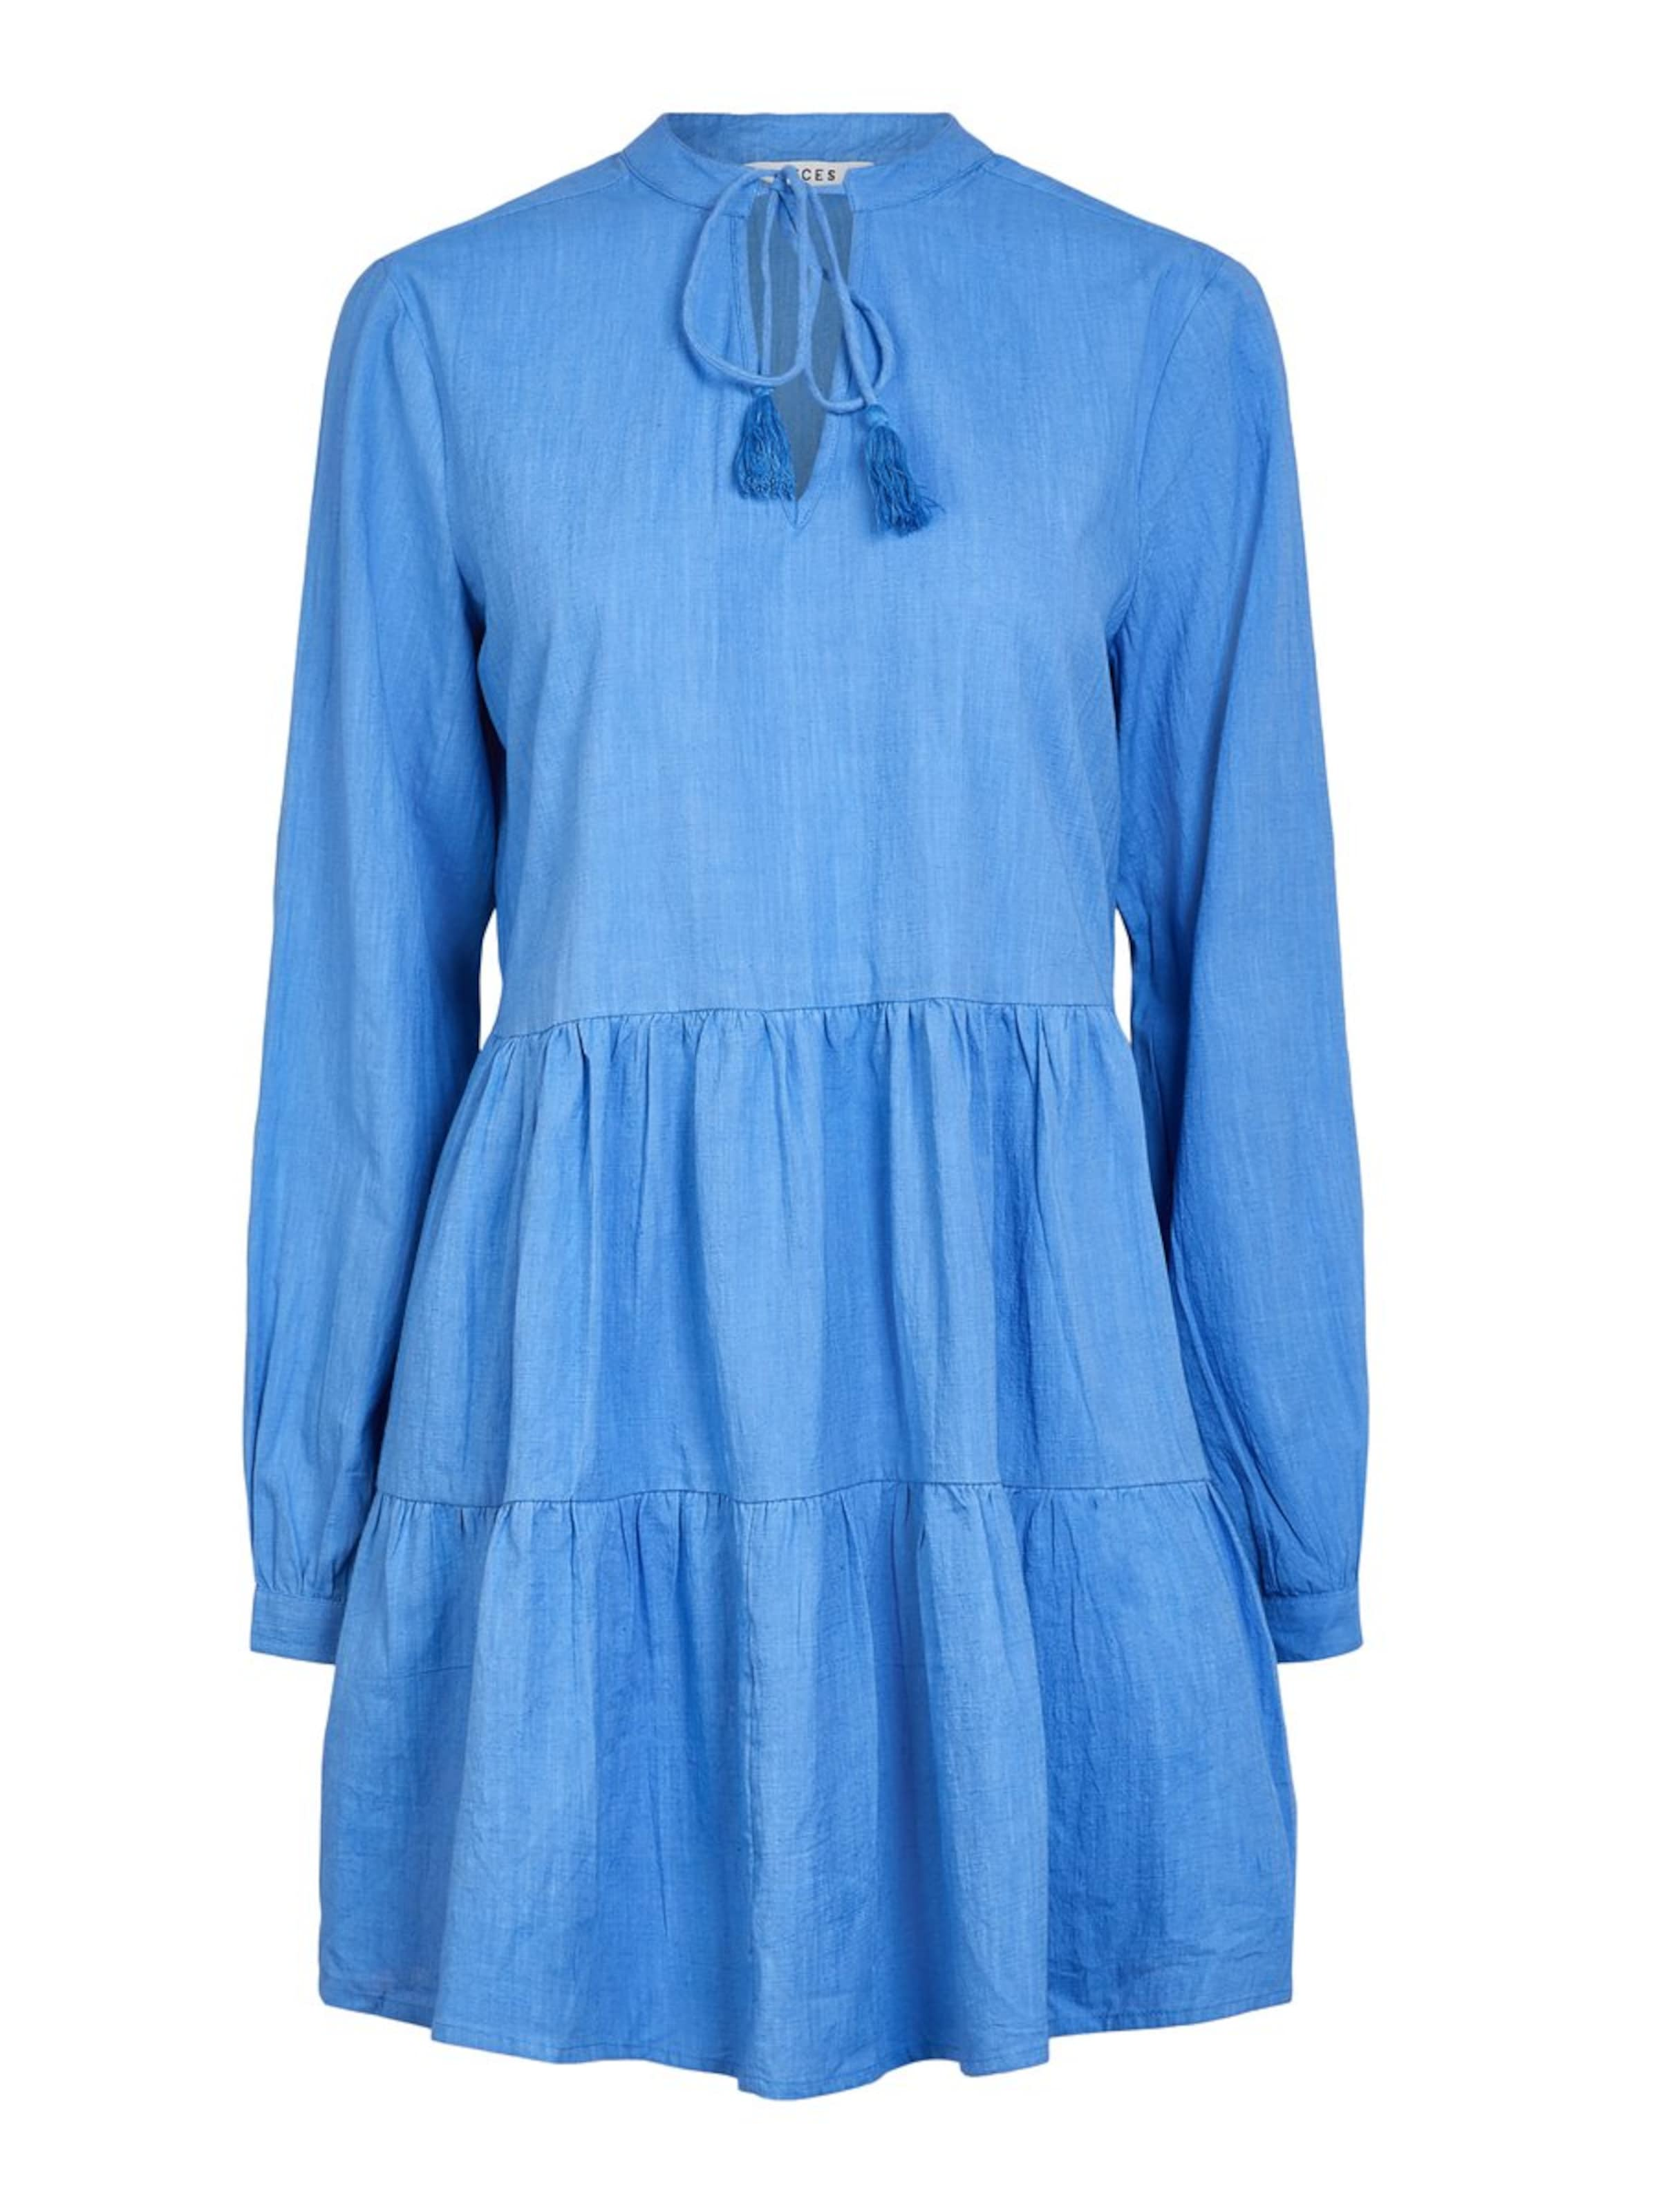 Blau Pieces Pieces In Kleid In Kleid 8kOnw0P